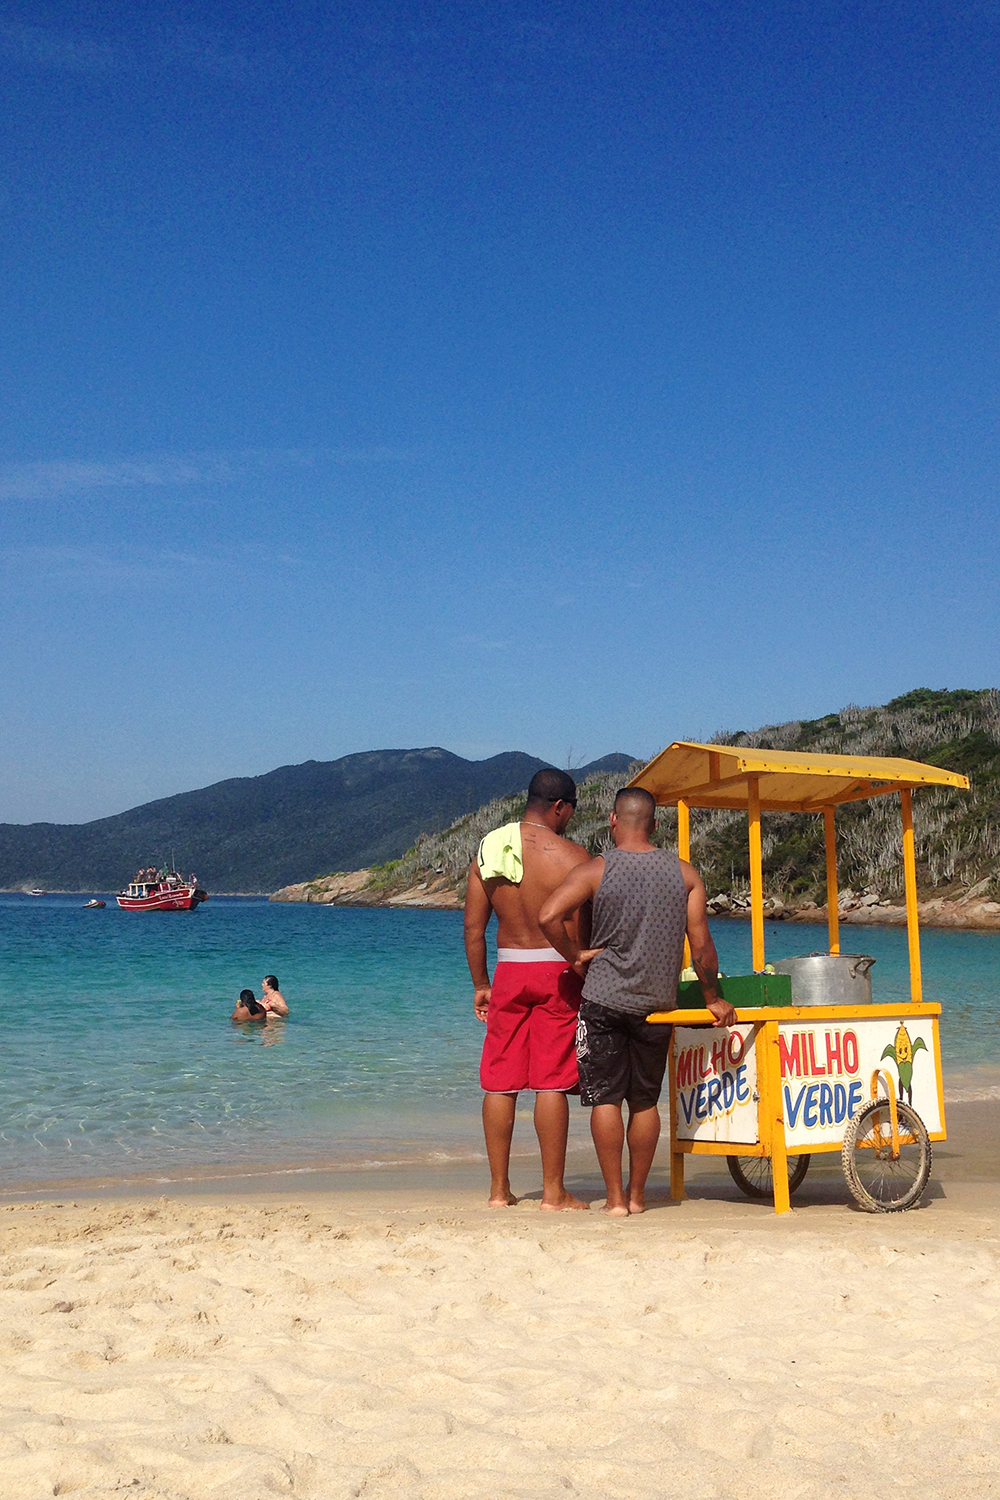 traveldiary-arraial-do-cabo-milho-verde